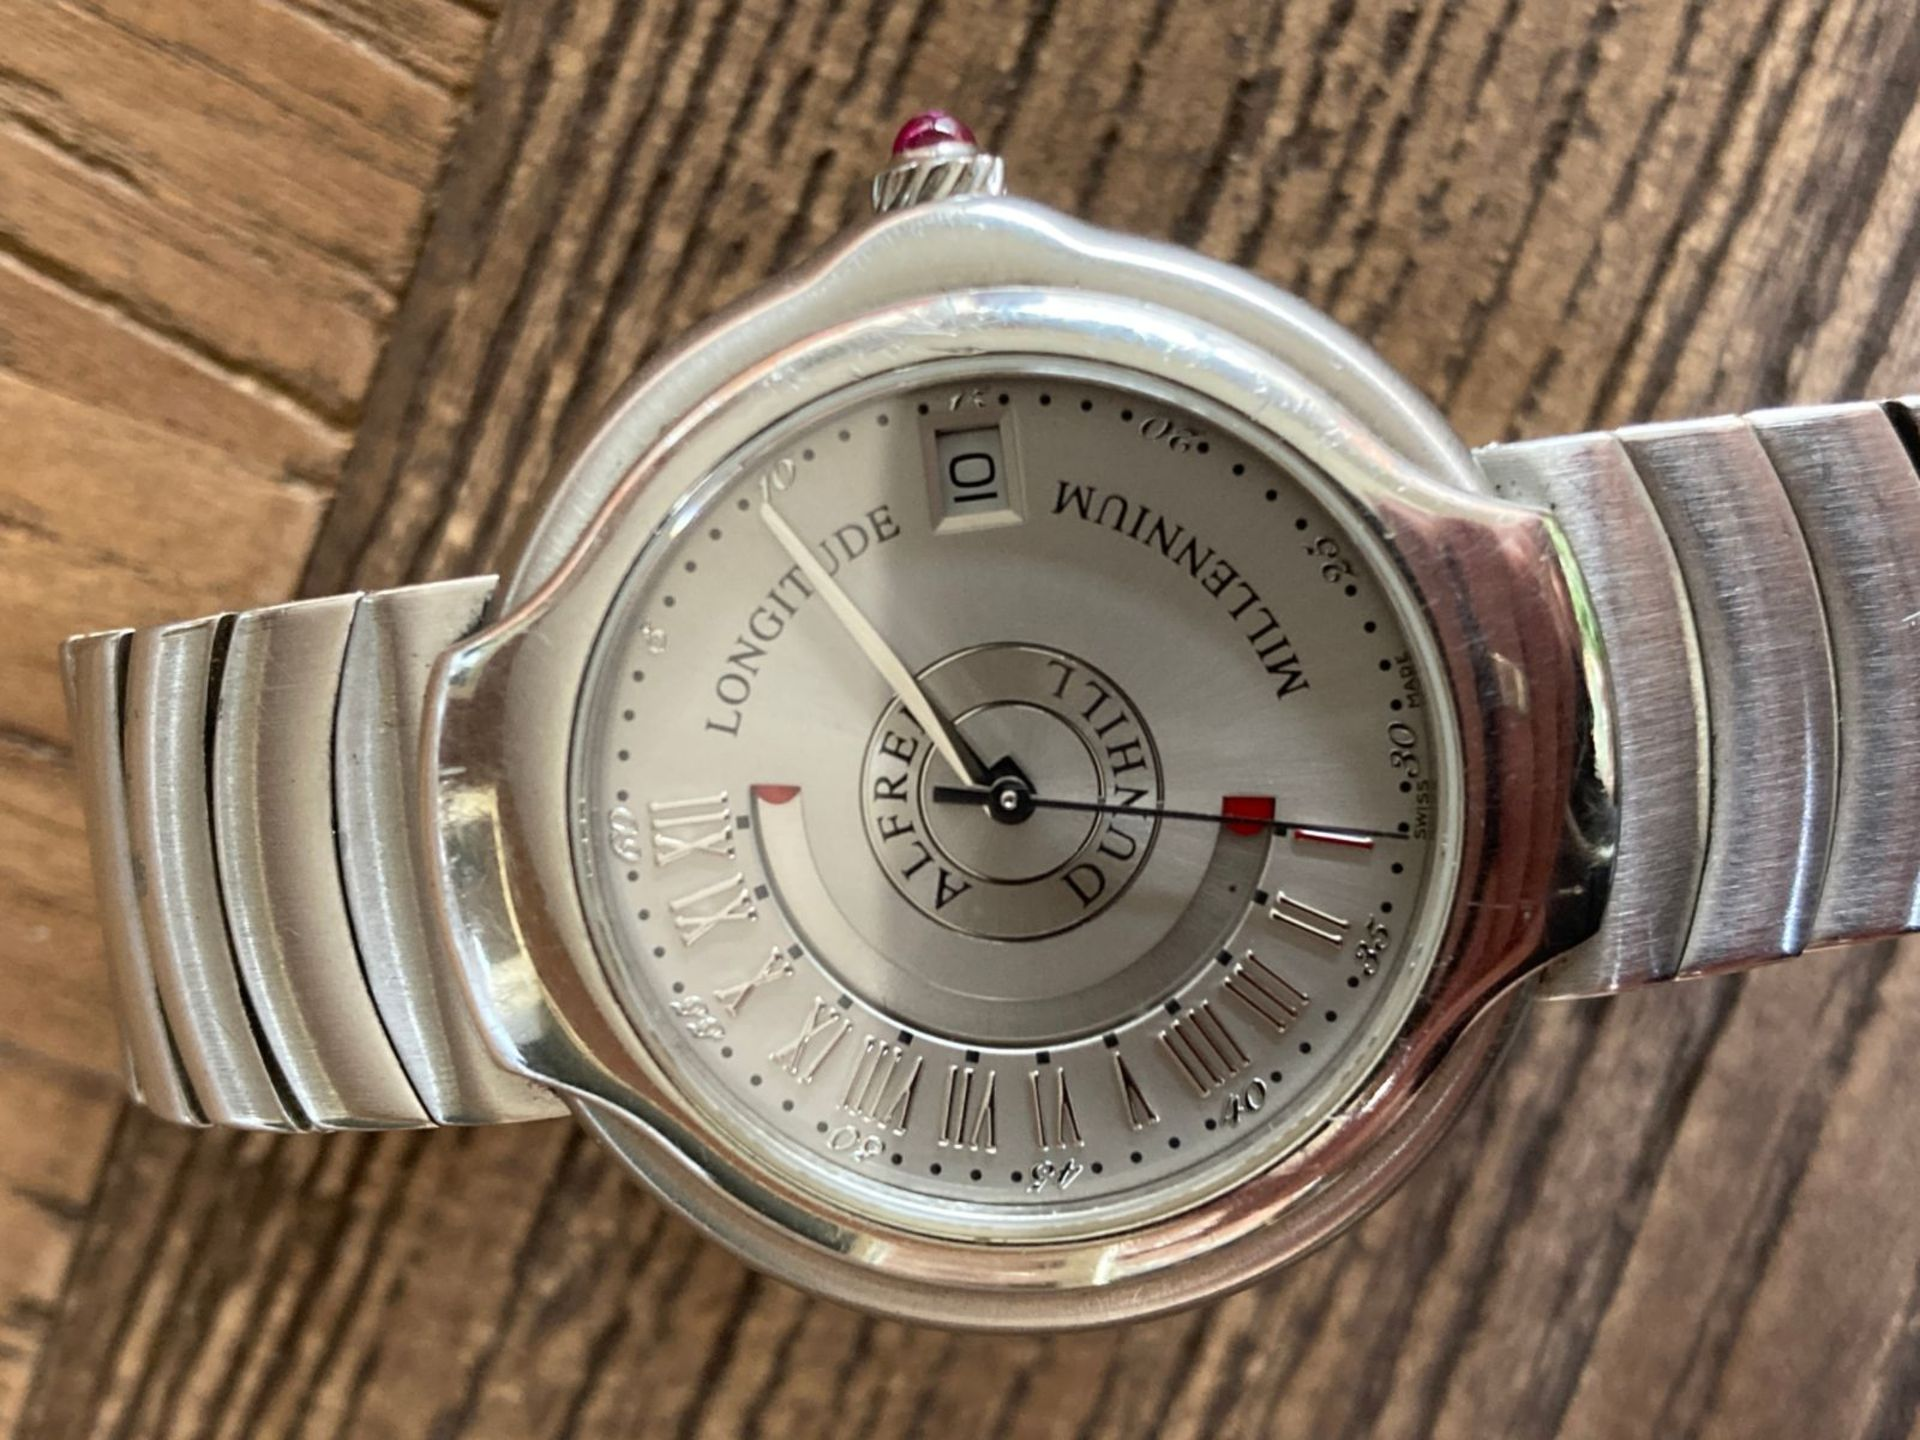 ALFRED DUNHILL WATCH - Image 2 of 6